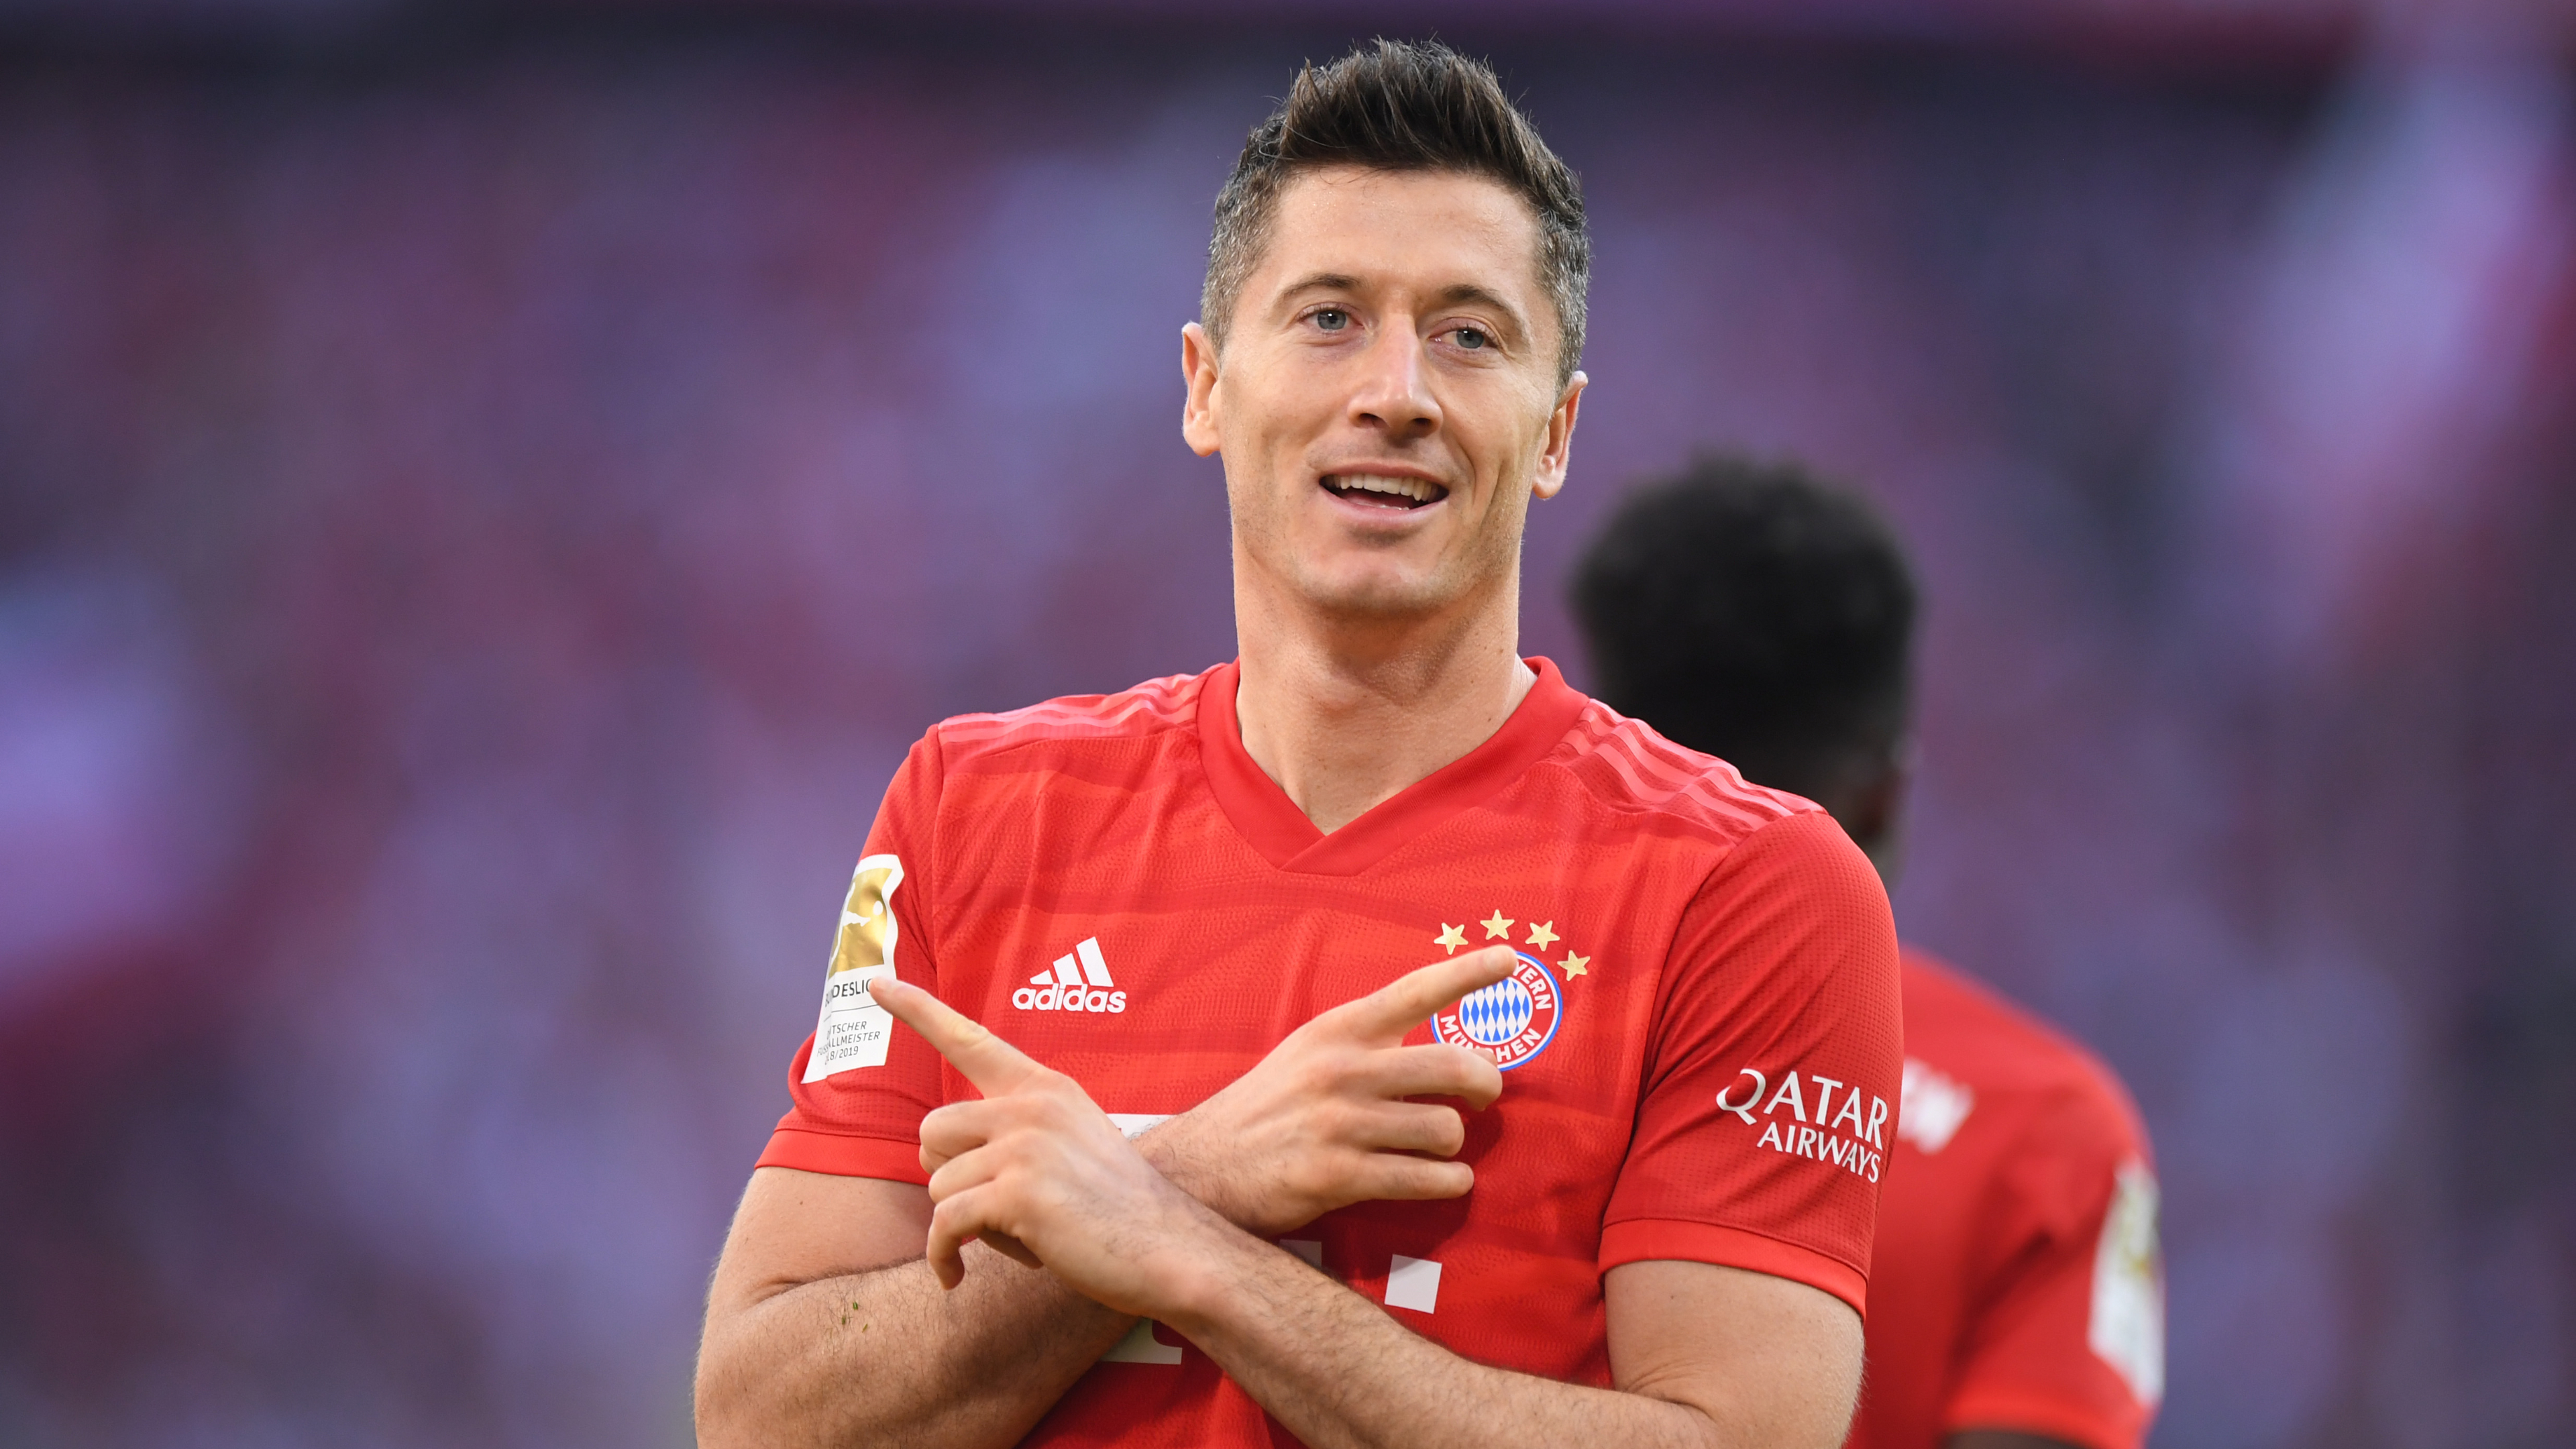 Lewandowski records personal best with 44th goal of the season for Bayern Munich